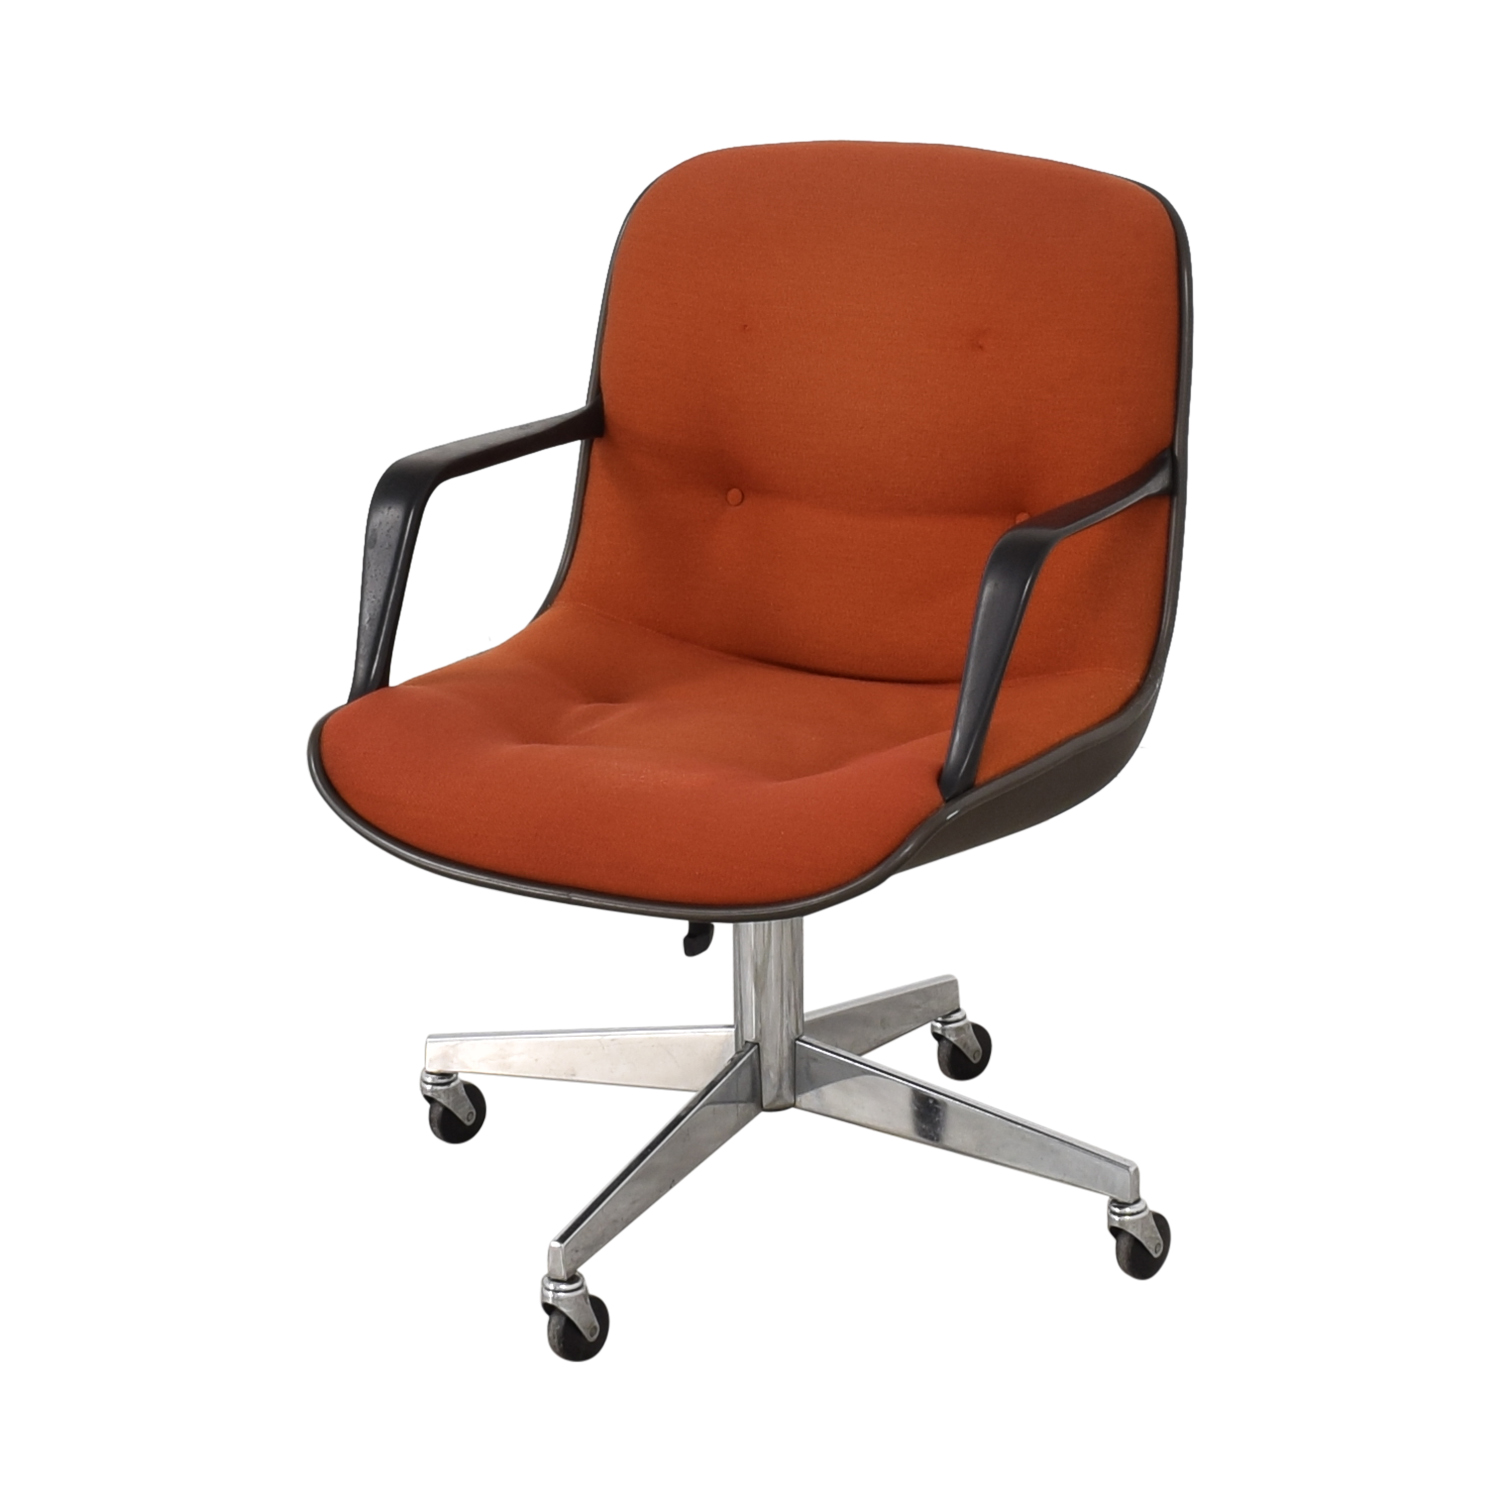 Steelcase Steelcase 451 Supervisors Desk Chair used